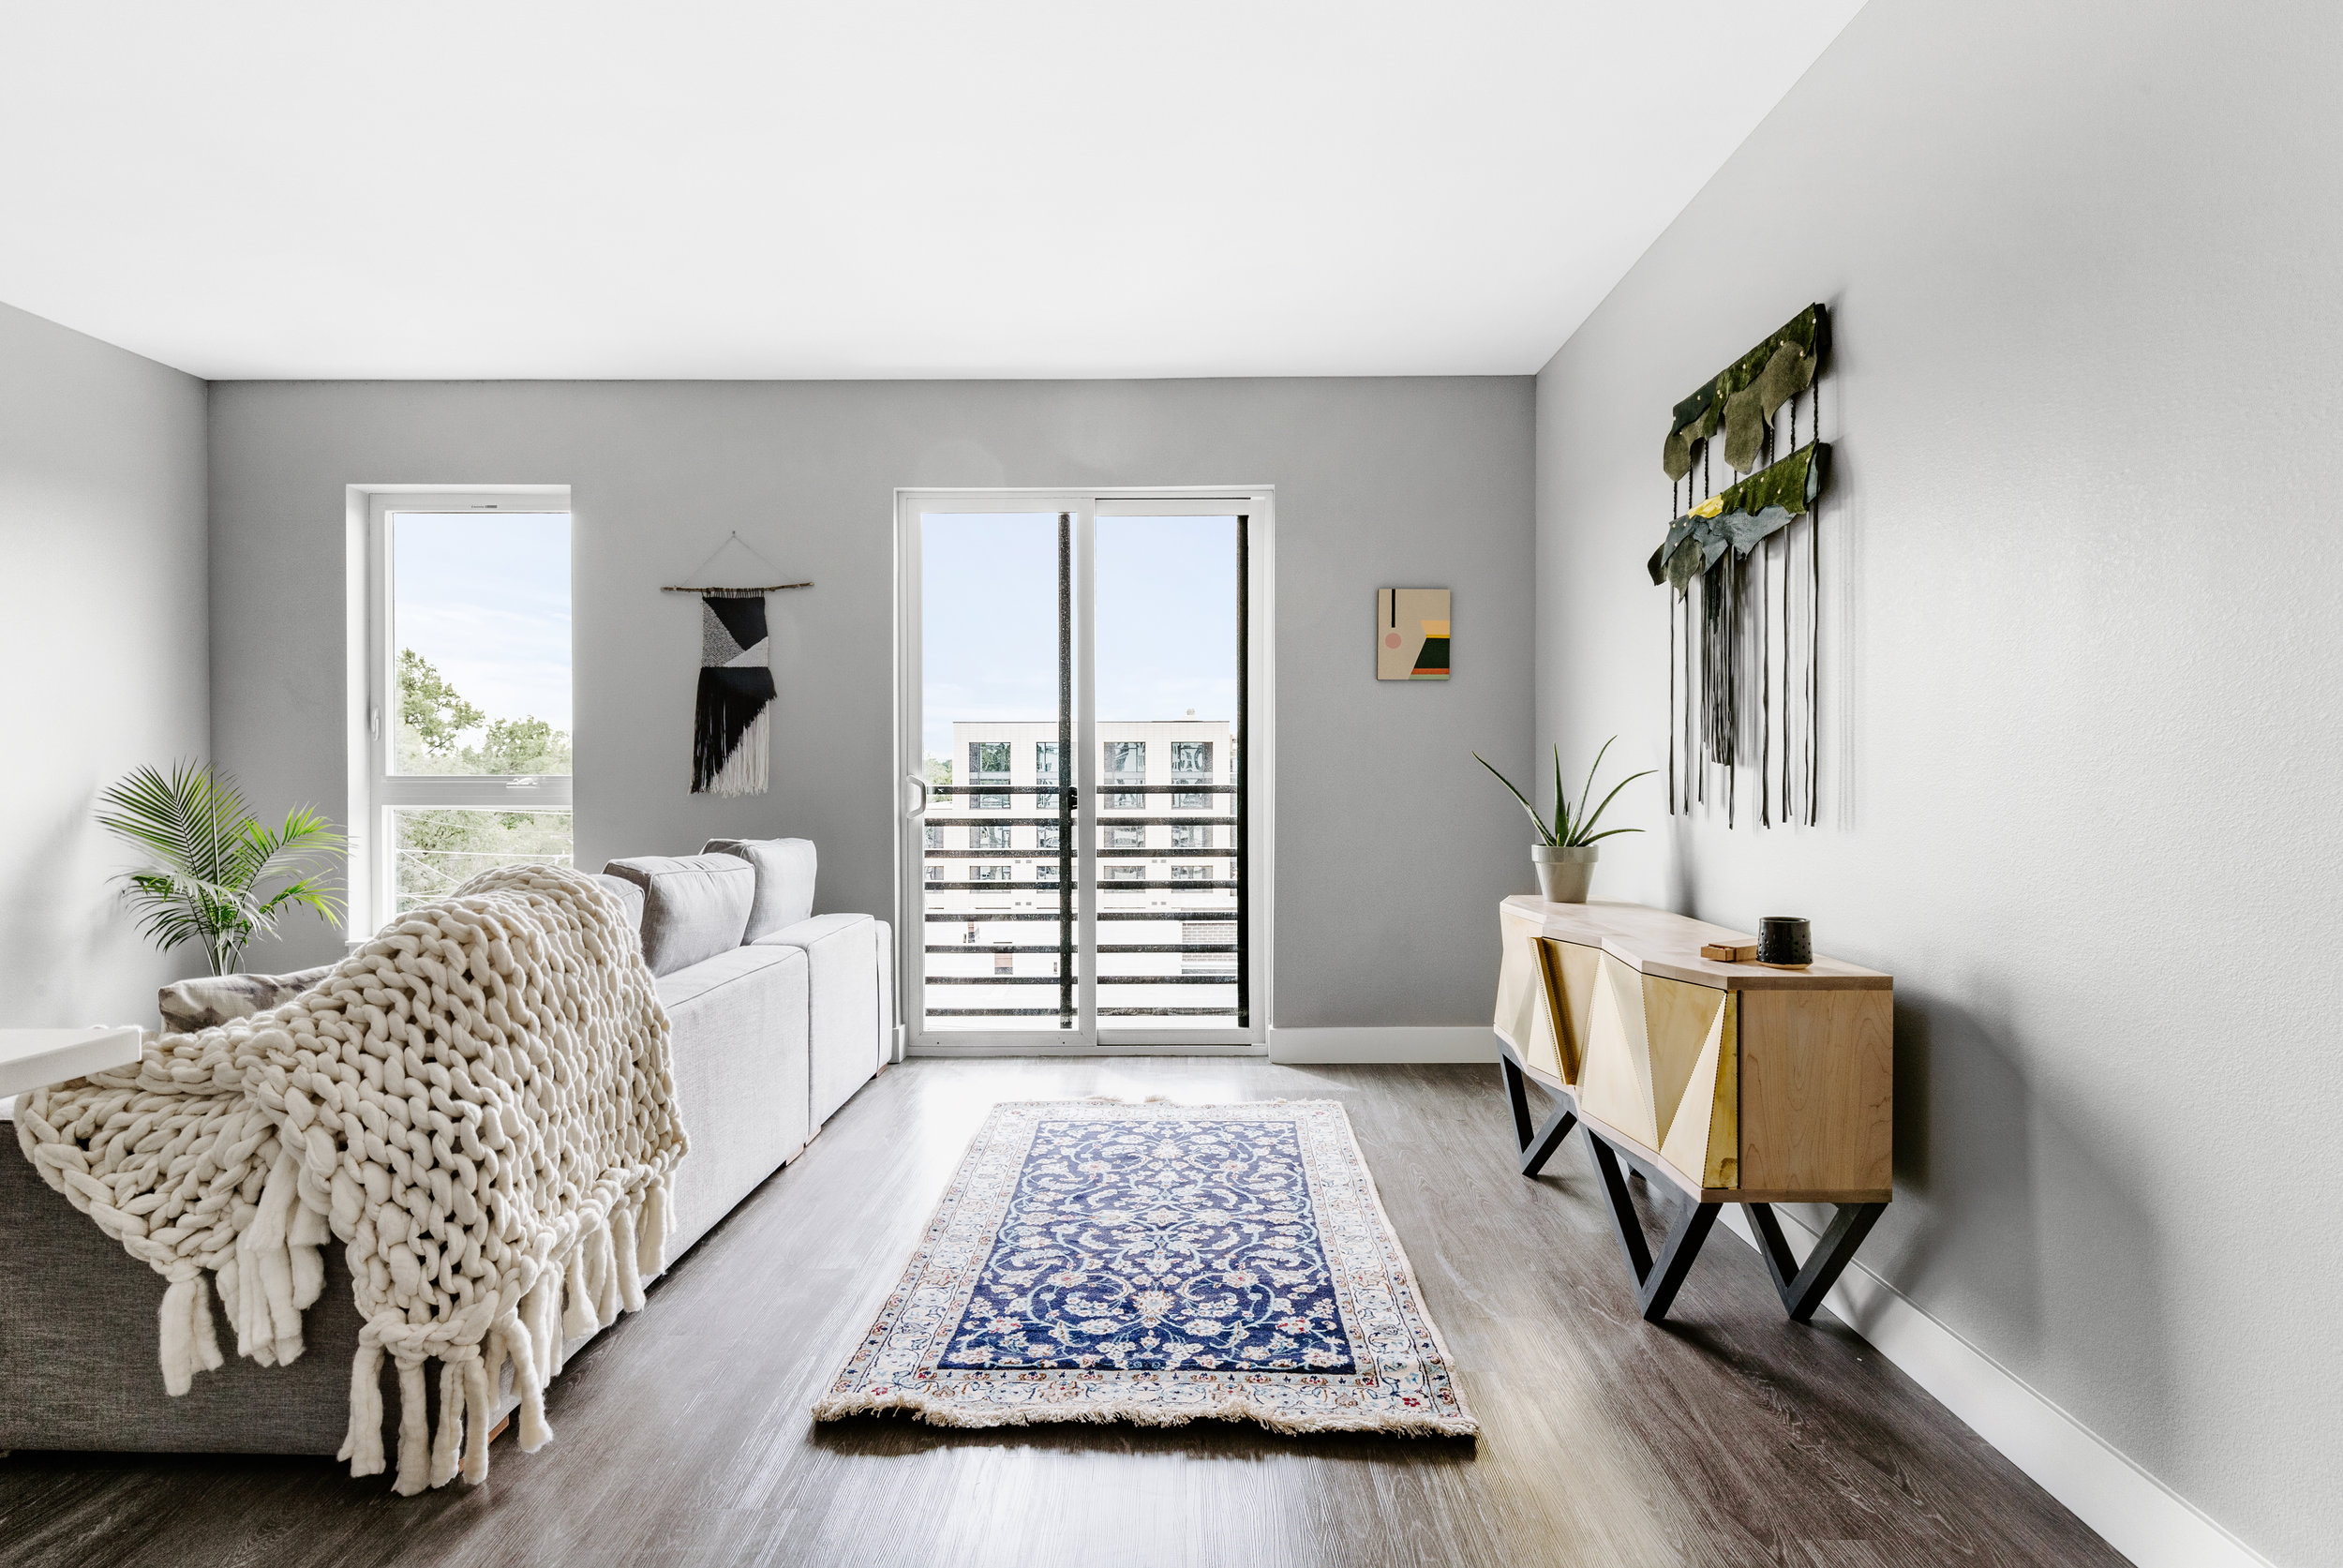 Observatory Flats 406 - Listed for $375,000 by Red T Homes.